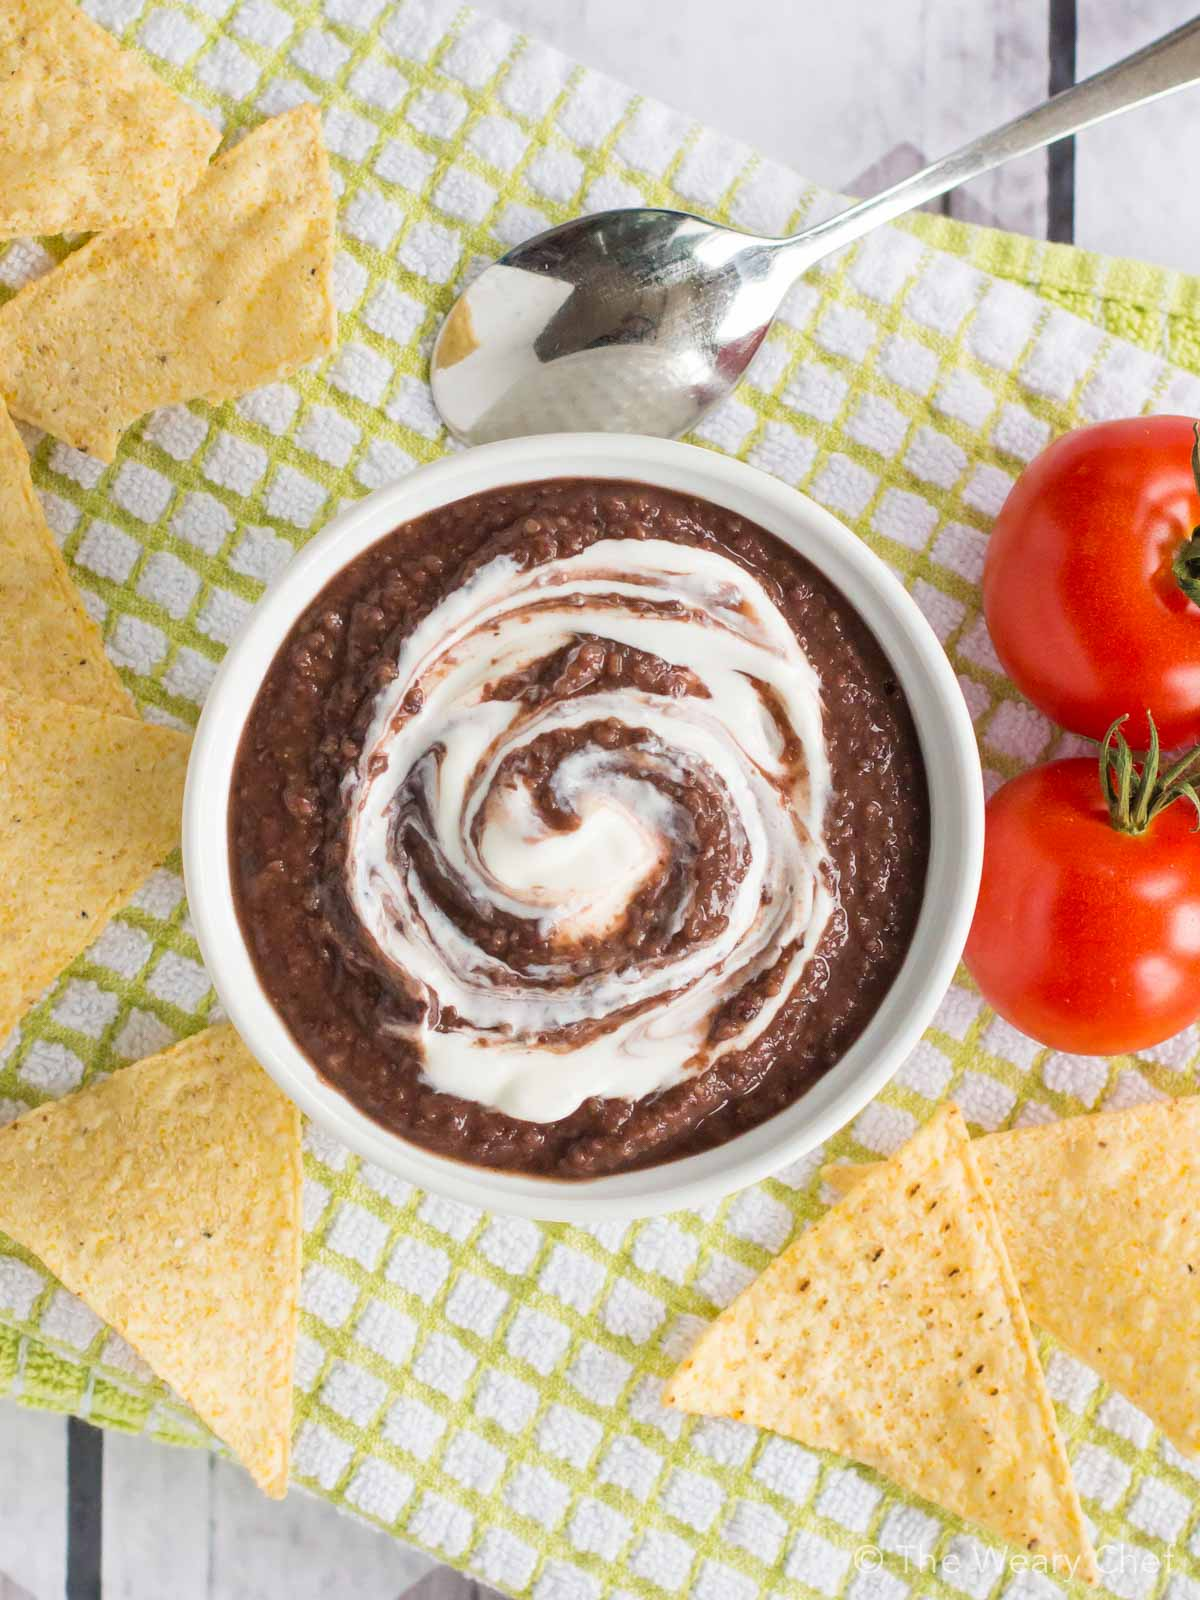 One of my easiest recipes yet, you'll want to make this Blender Black Bean Soup again and again!